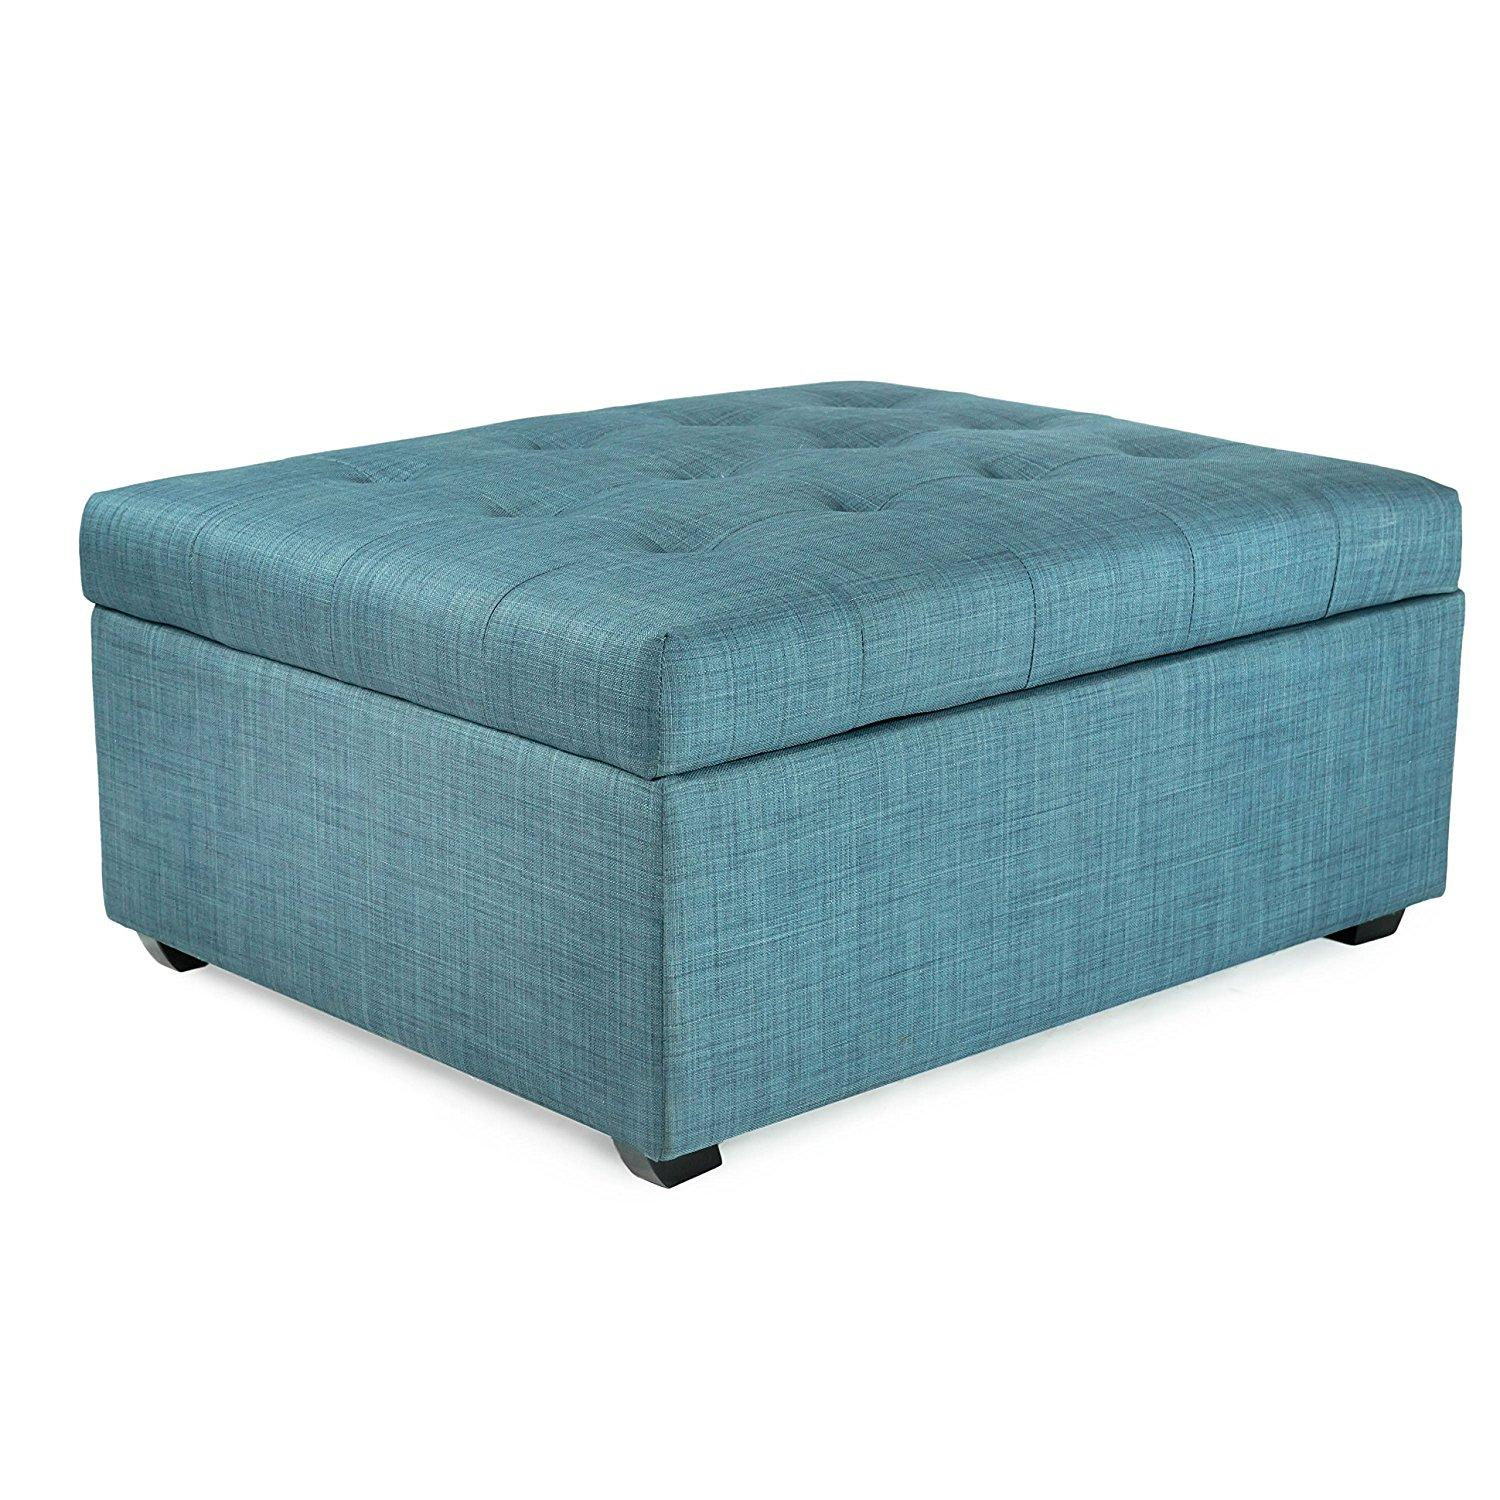 ibed convertible ottoman guest bed in blue fabric kitchen islands carts. Black Bedroom Furniture Sets. Home Design Ideas